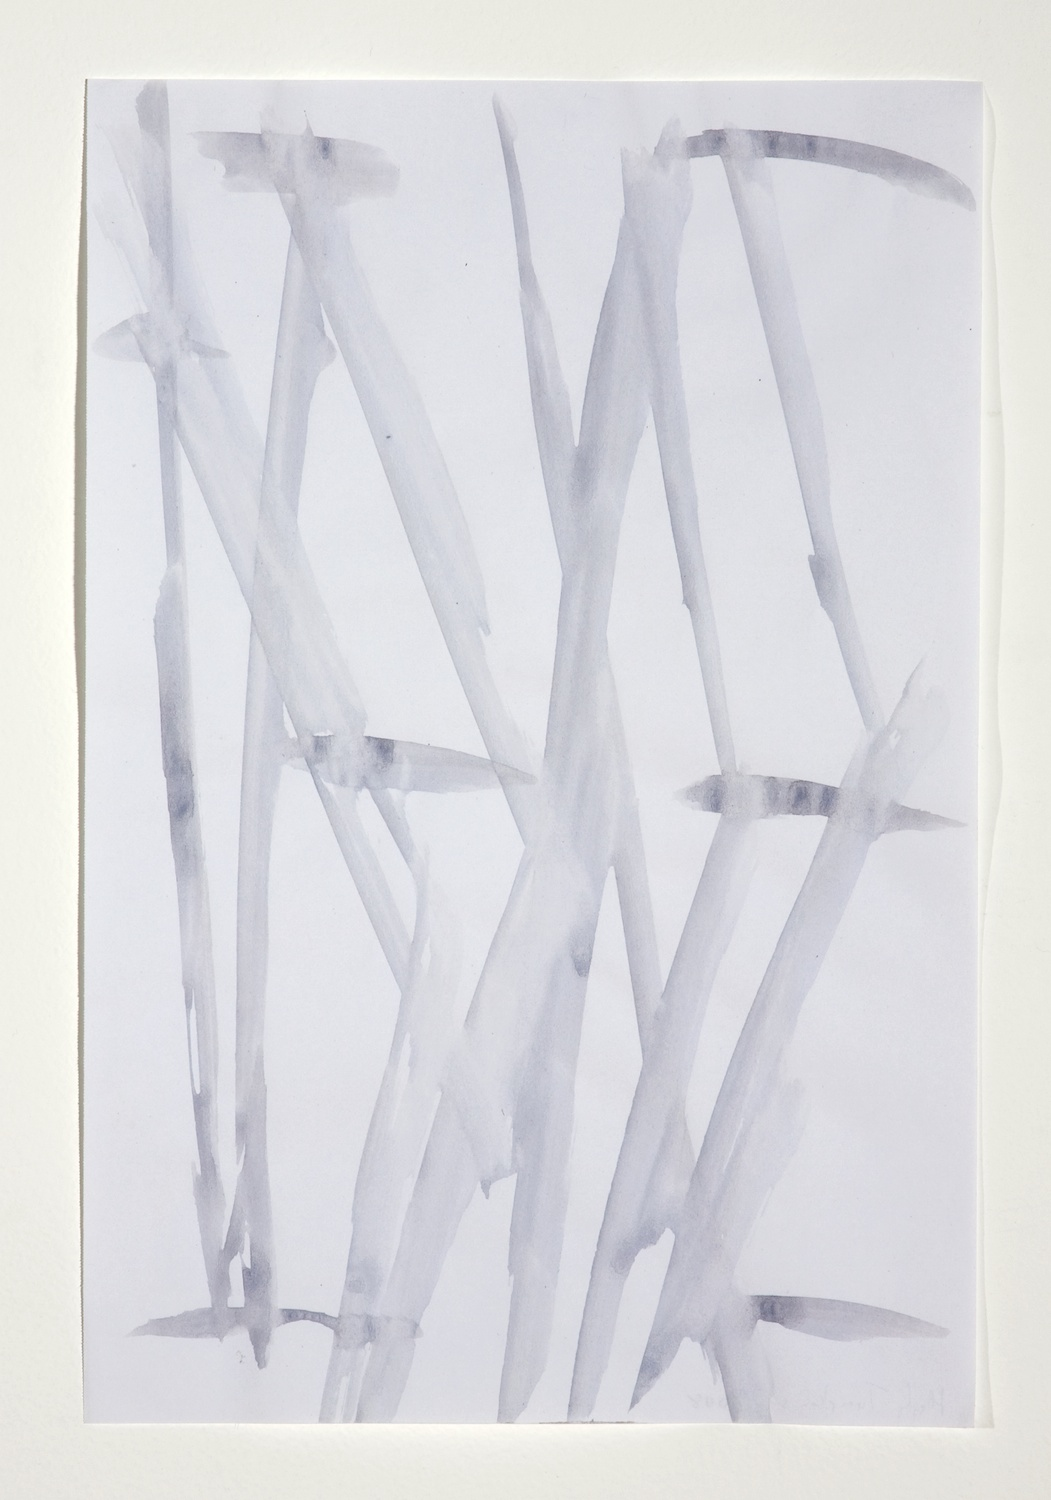 Hayley Tompkins  Re  2008 Gouache on paper 11 ¾h x 7w in